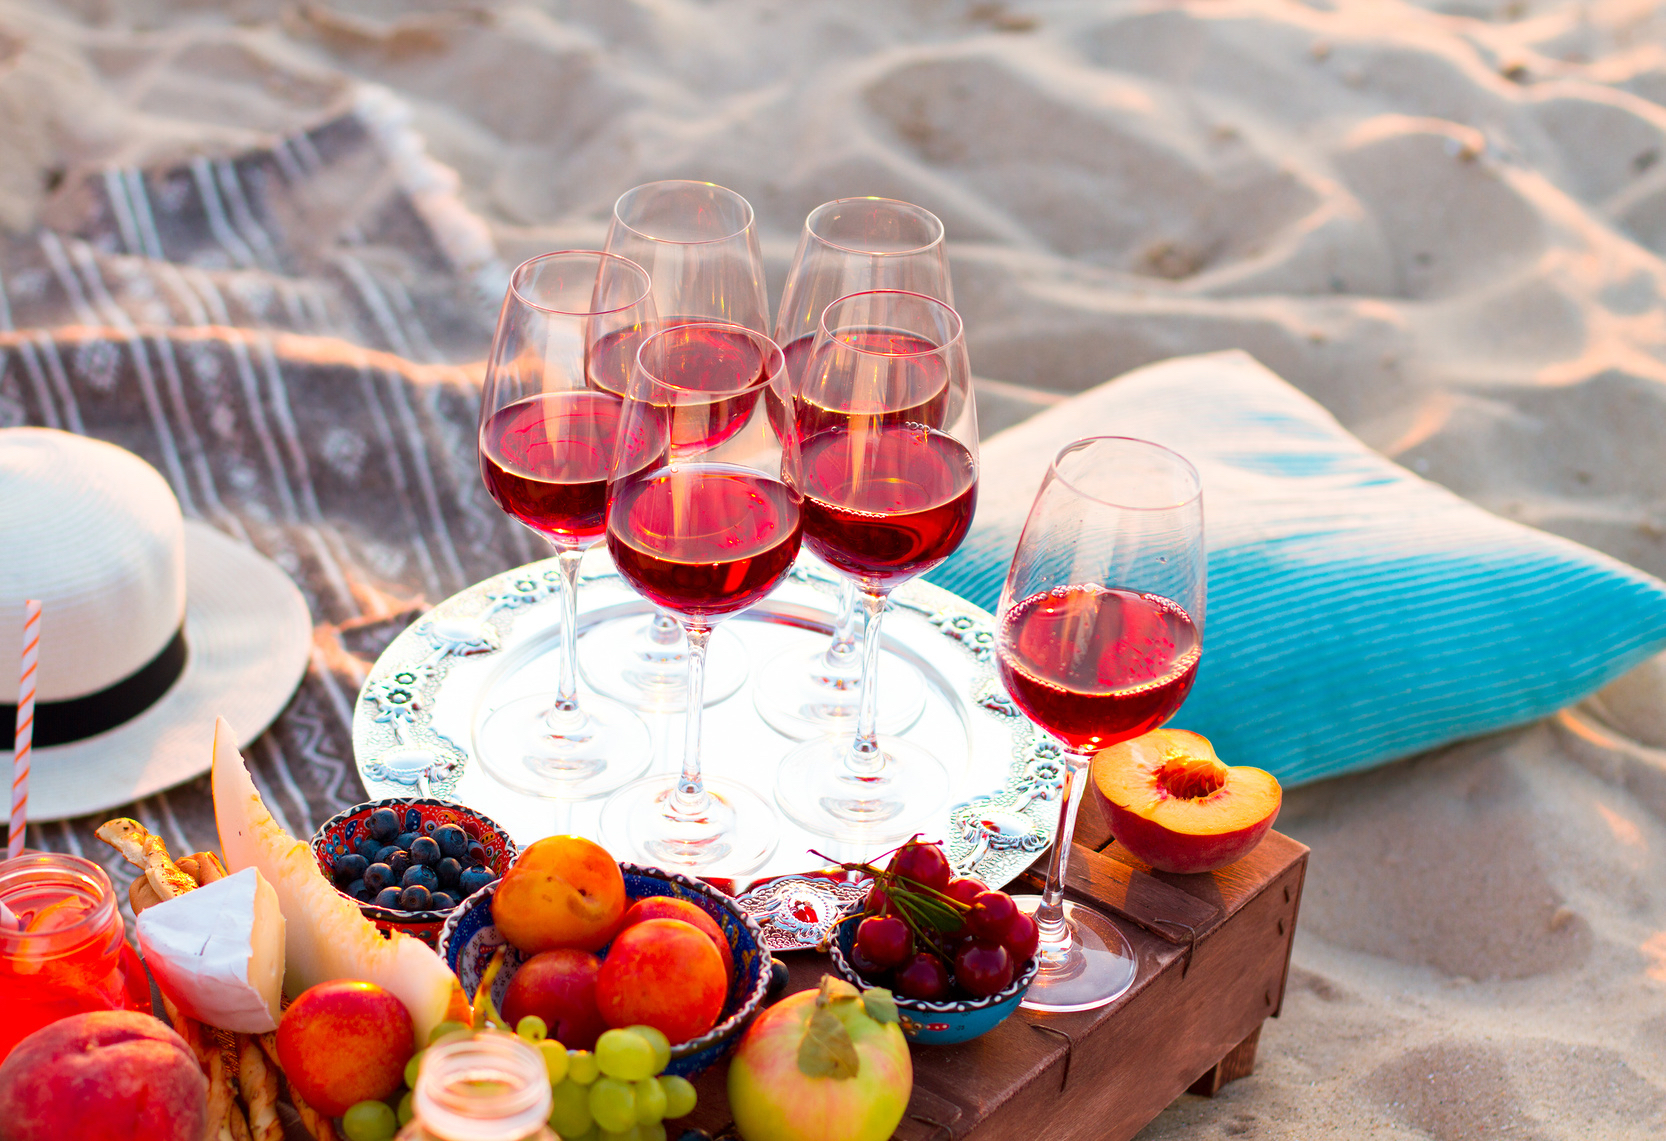 Authentic luxury trend beach picnic